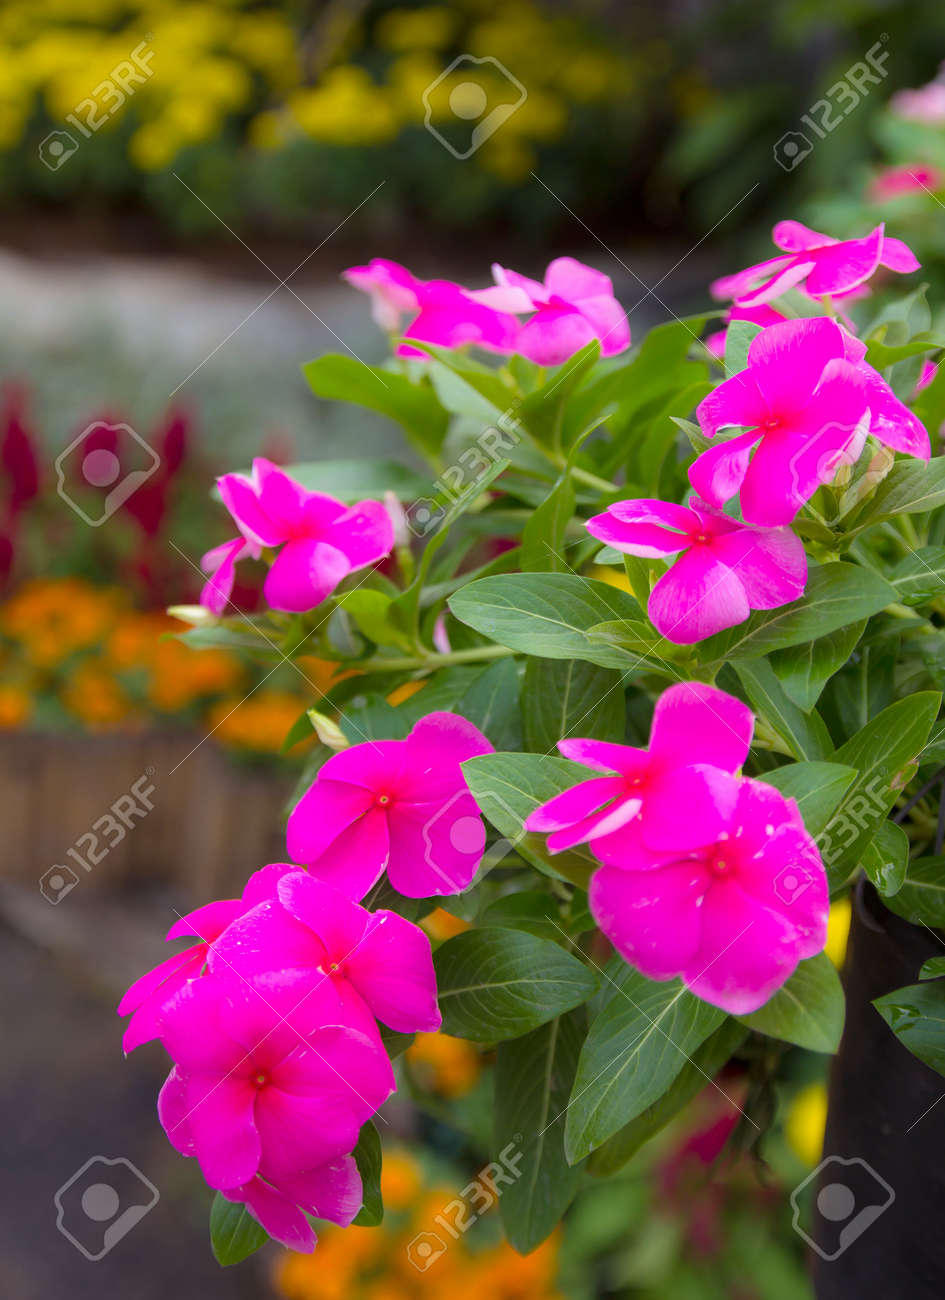 Garden flowers names - Pink Roseus Flowers In Garden The Scientific Name Catharanthus Roseus G Common Name Don